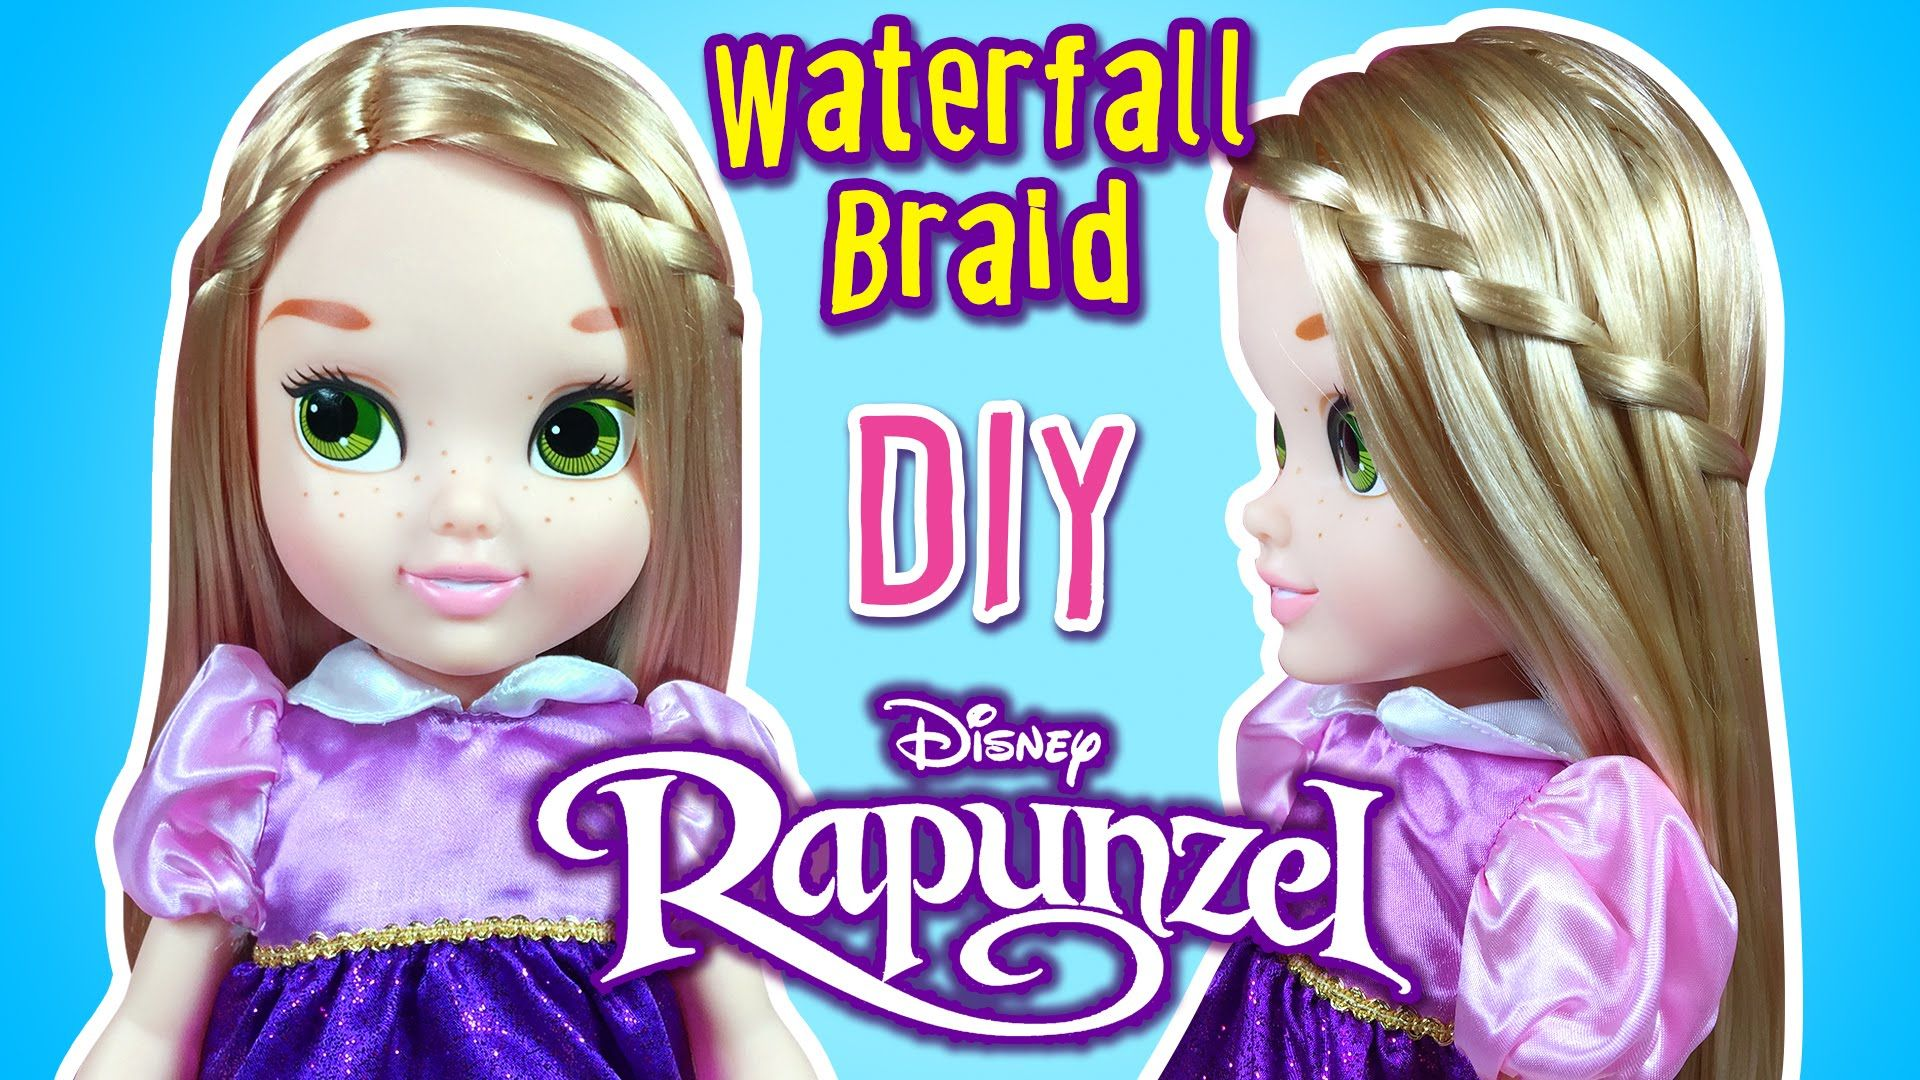 Disney Rapunzel Doll Hairstyles - How to Make Waterfall Braid for